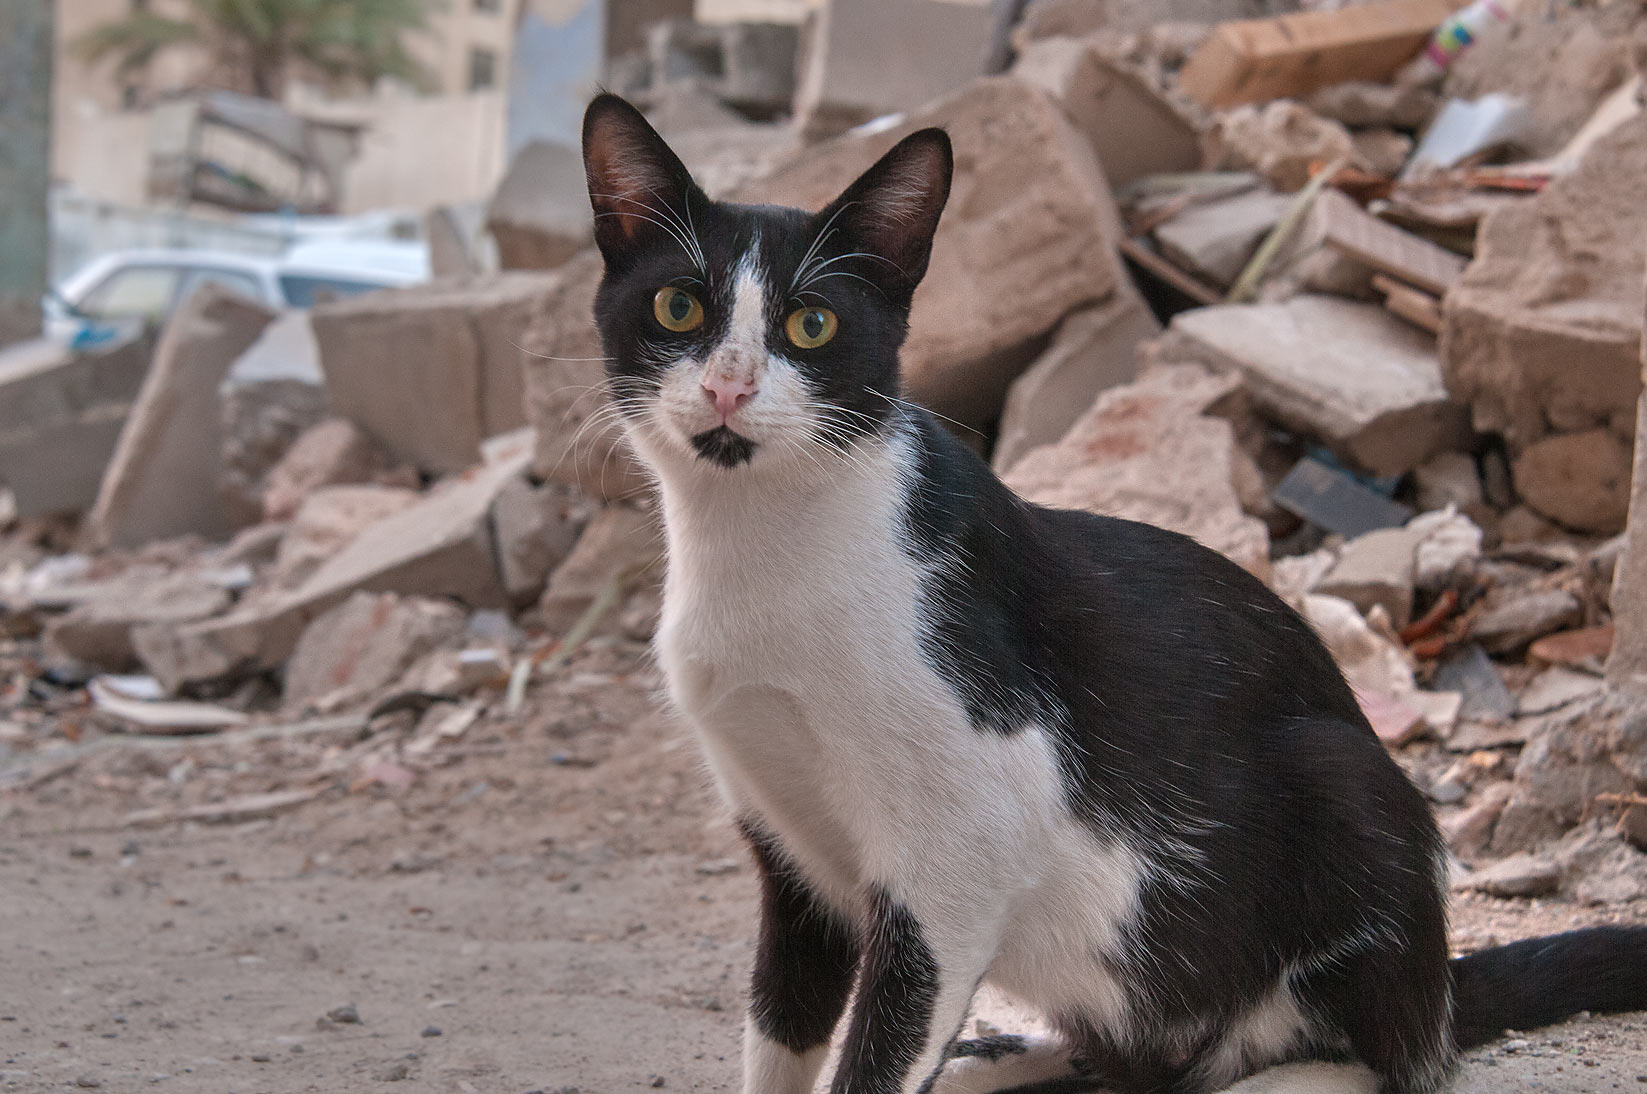 Tuxedo cat near rubble near Umm Wishah St., Musheirib area. Doha, Qatar